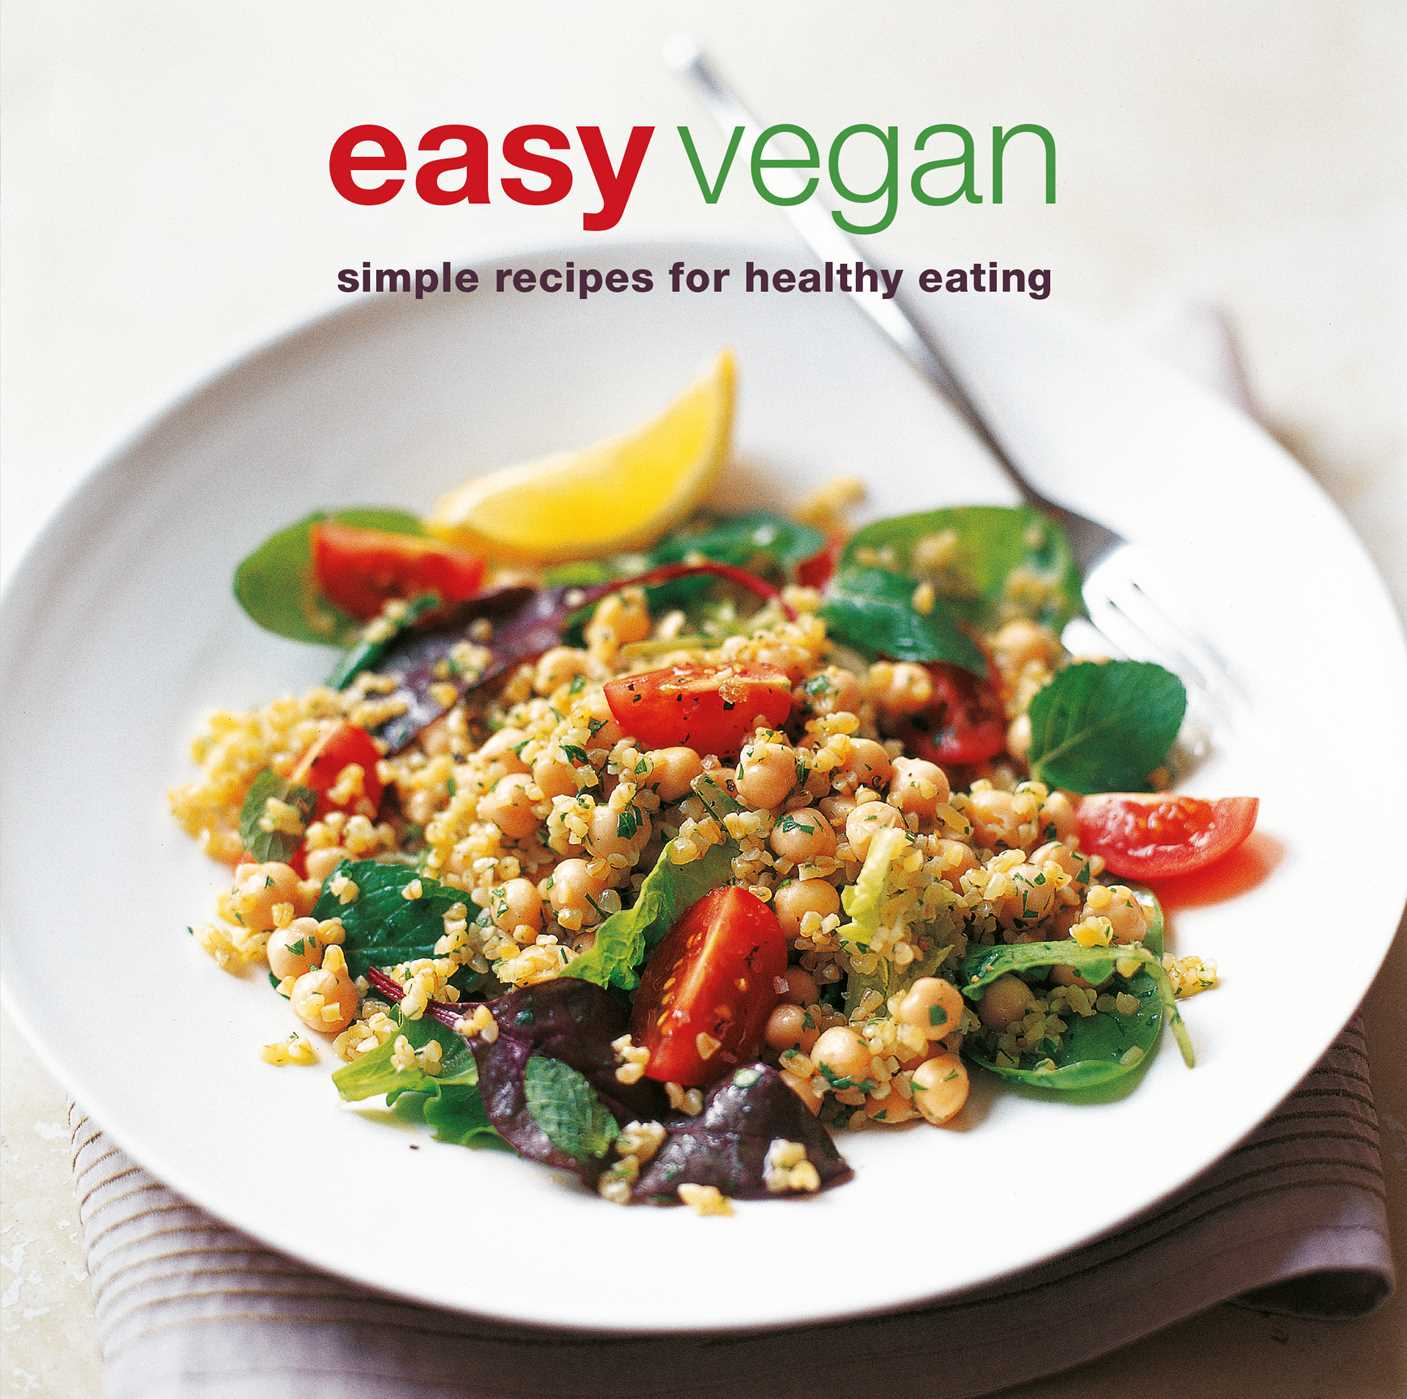 Easy vegan 9781845979584 hr